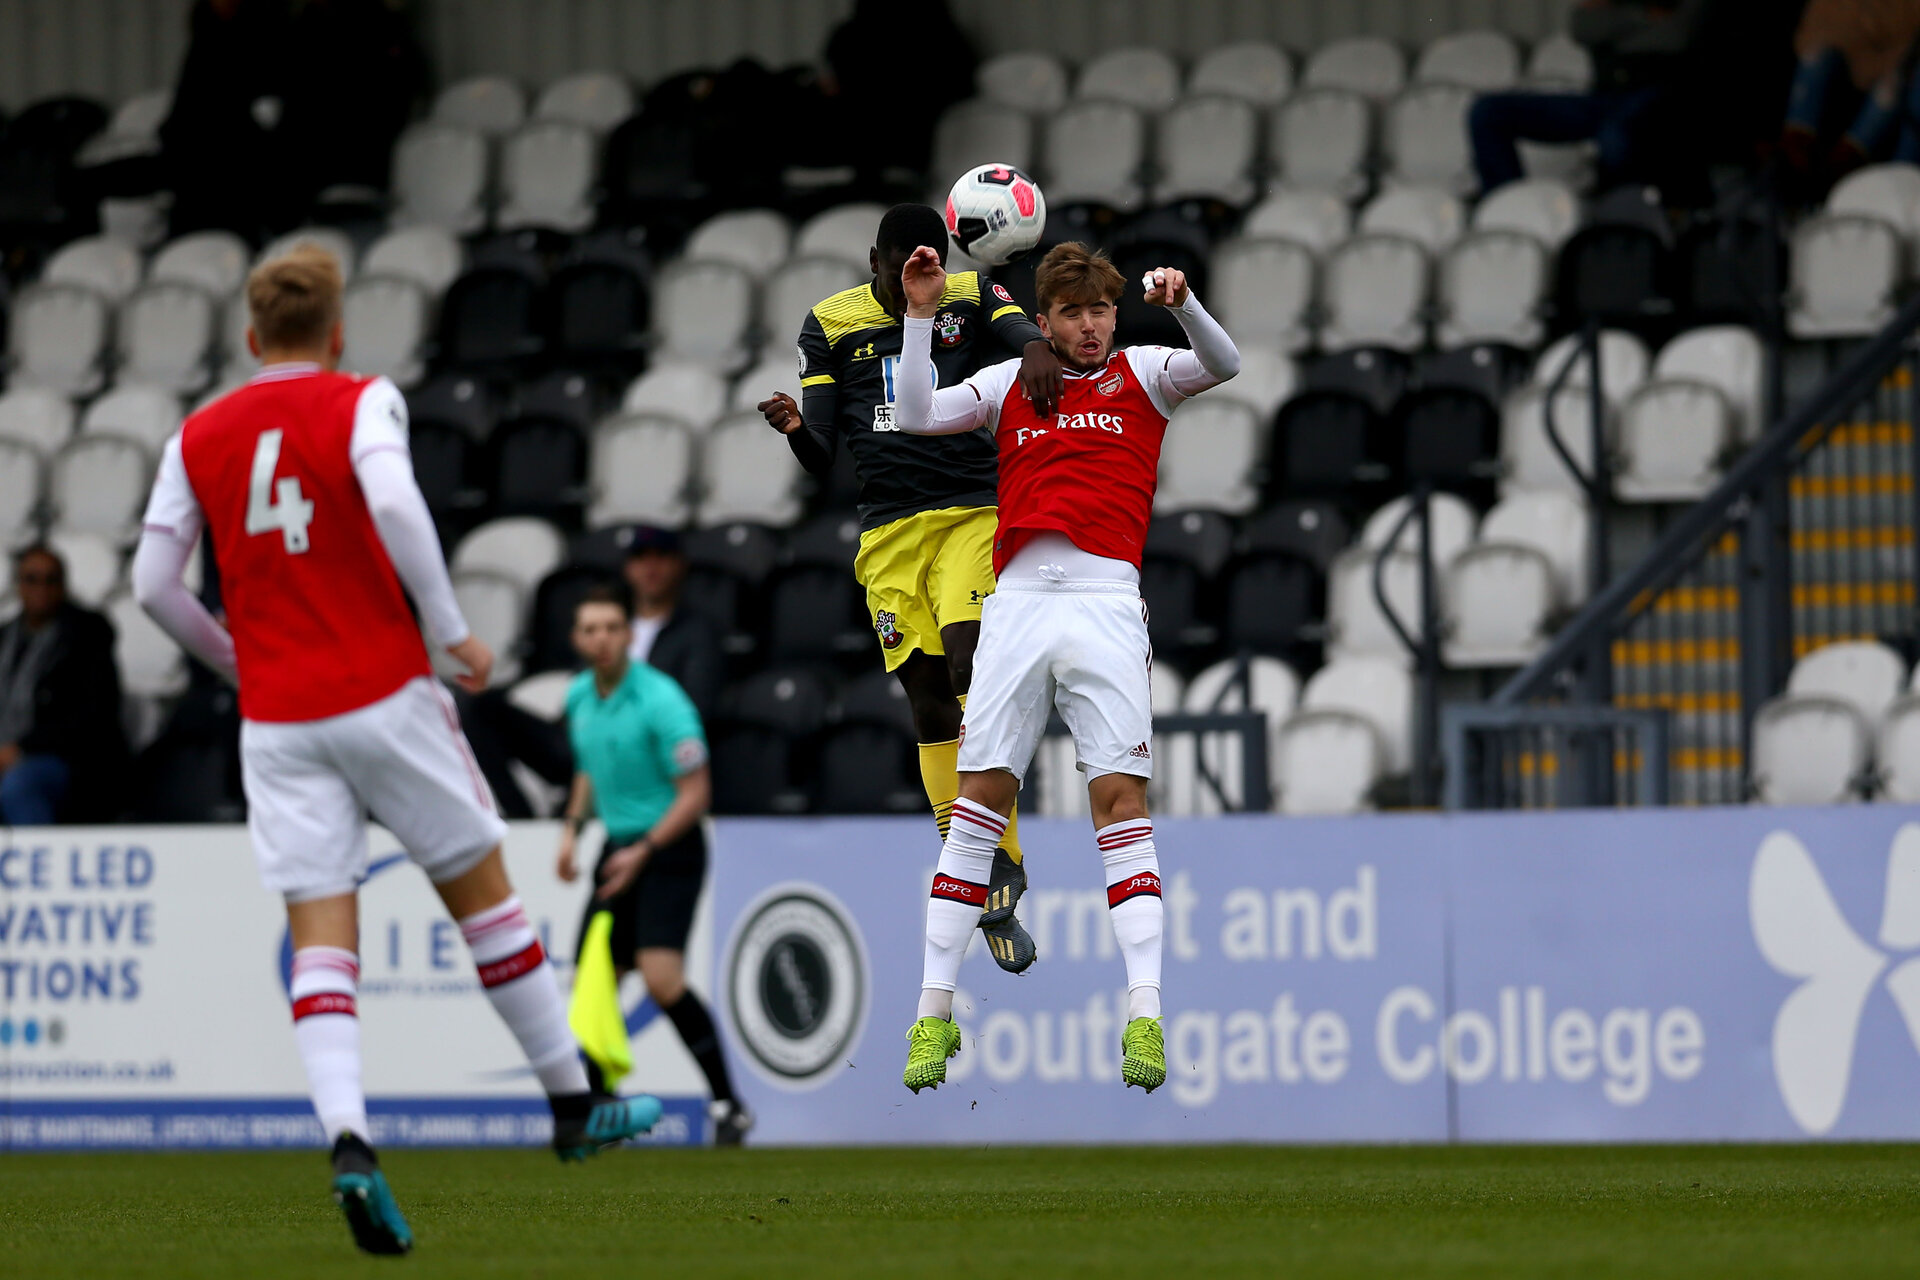 LONDON, ENGLAND - November 23: Lucas Defise header of Southampton during PL2 match between Arsenal and Southampton at Meadow Park on November 23 2019 in London England (Photo by Isabelle Field/Southampton FC via Getty Images)